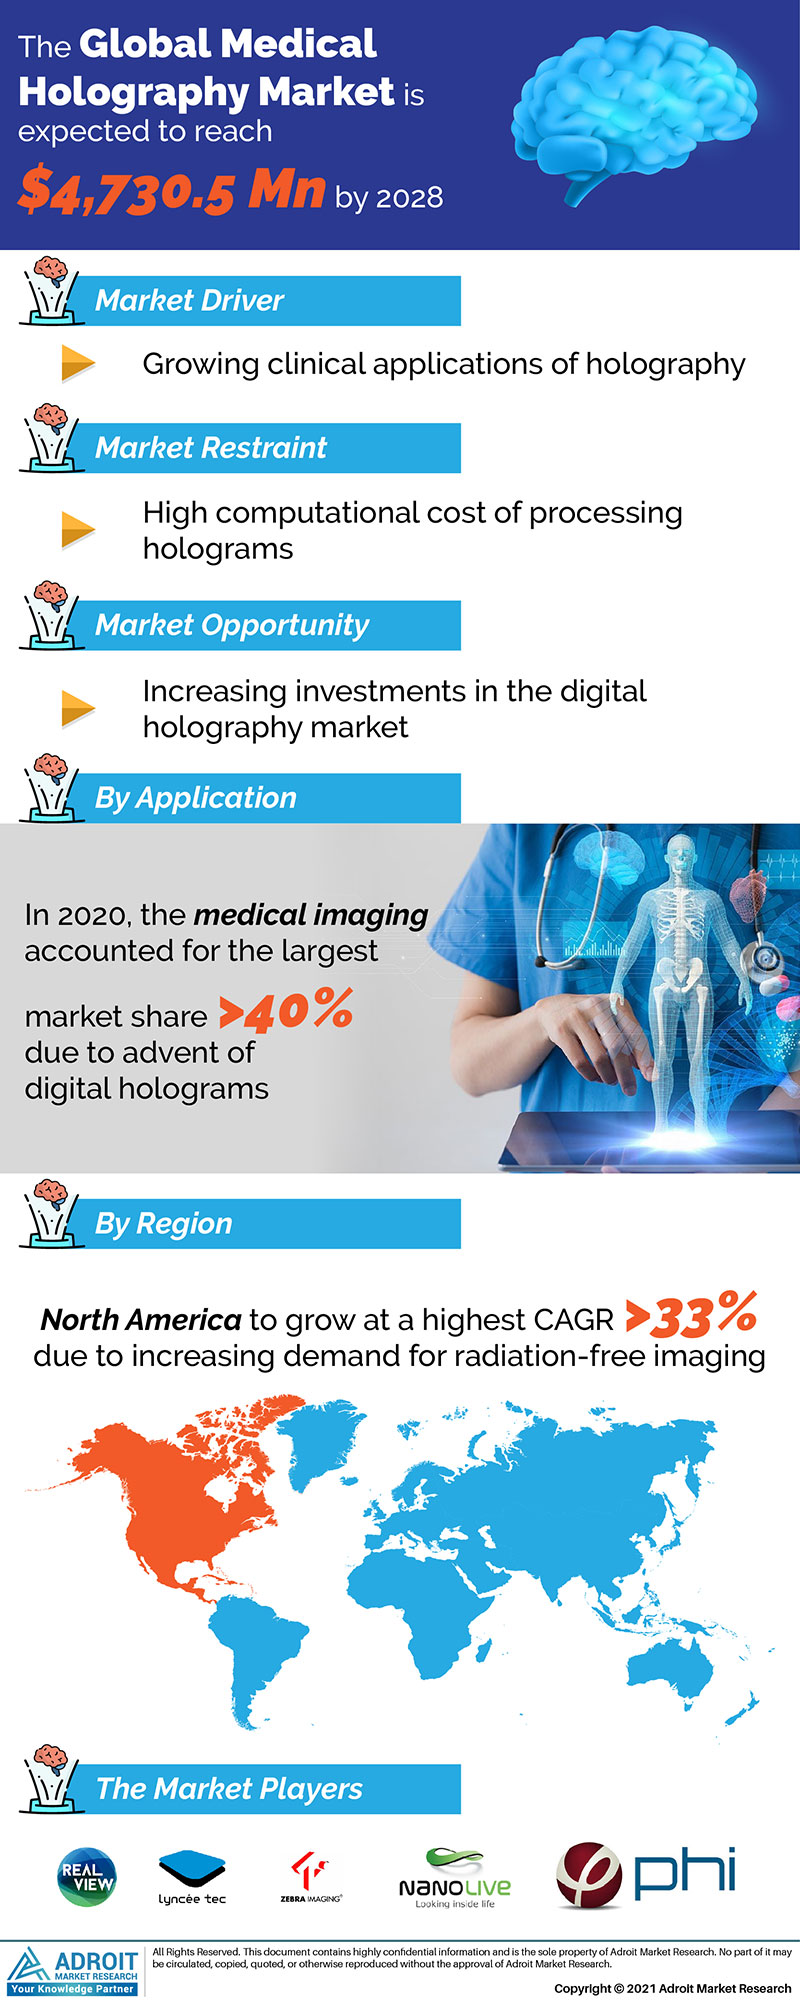 Global Medical Holography Market Size 2017 By Type, Device, Region and Forecast 2018 to 2025